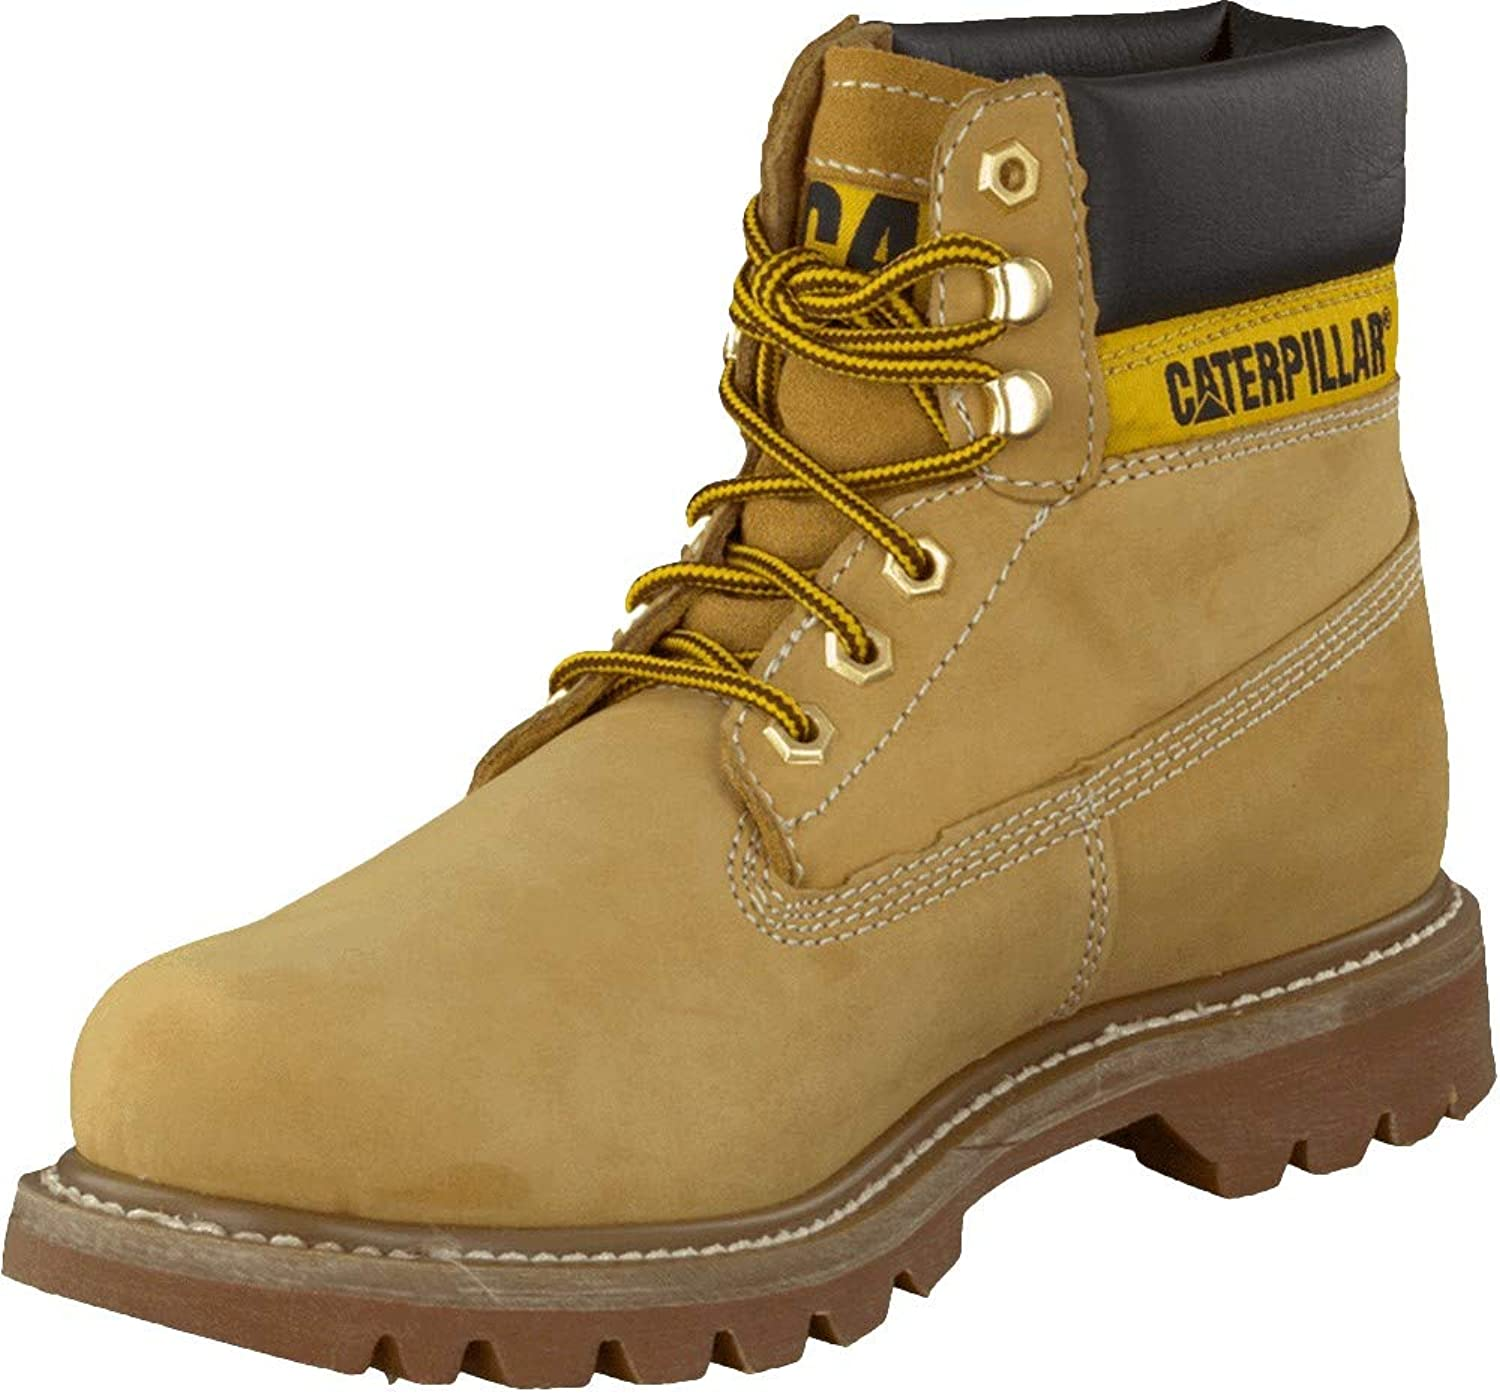 Cat colorado Mens Boots (Honey)